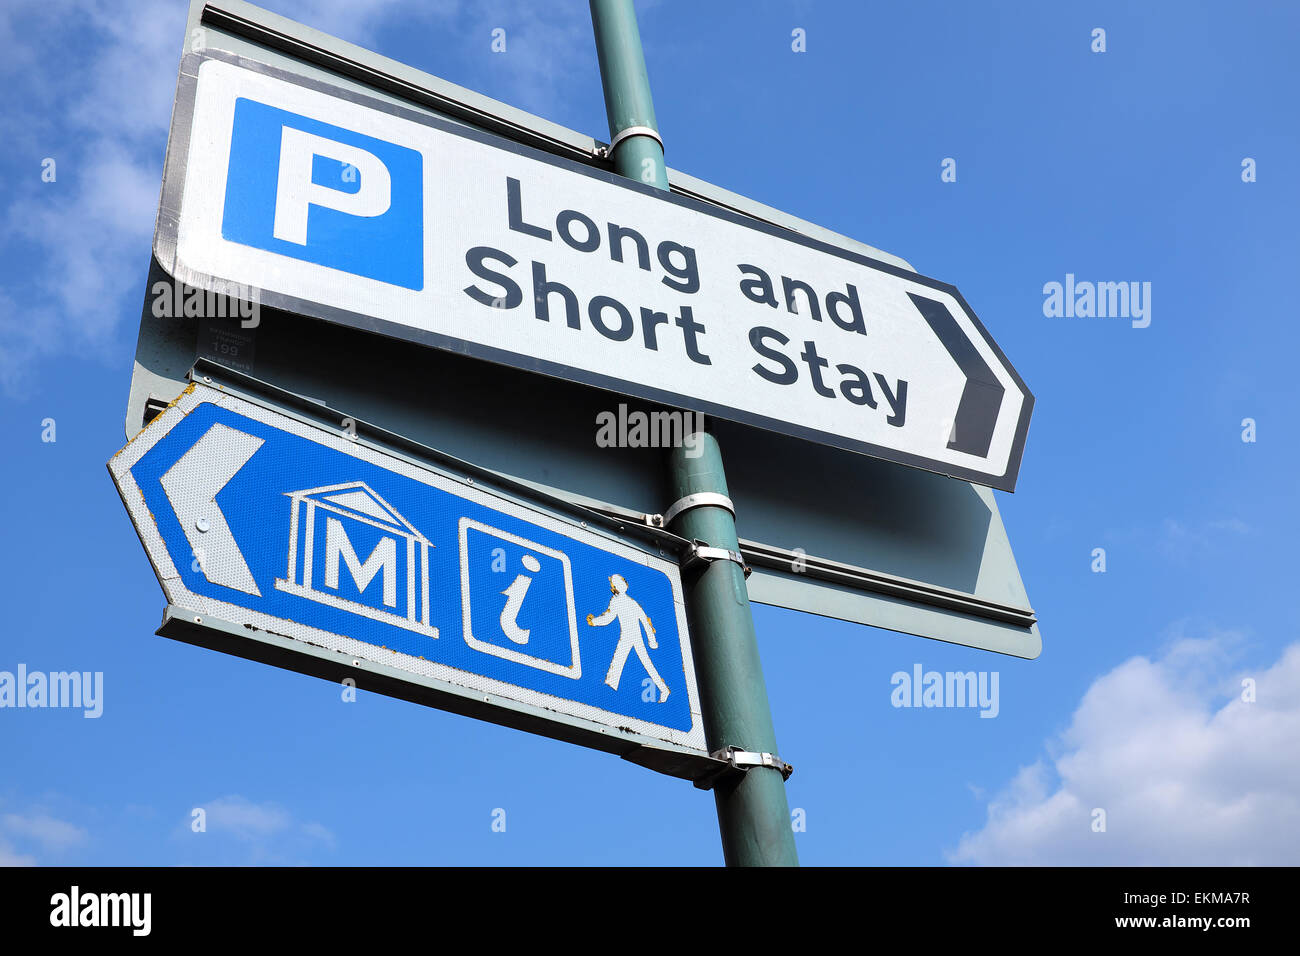 UK ROAD SIGNS - Stock Image